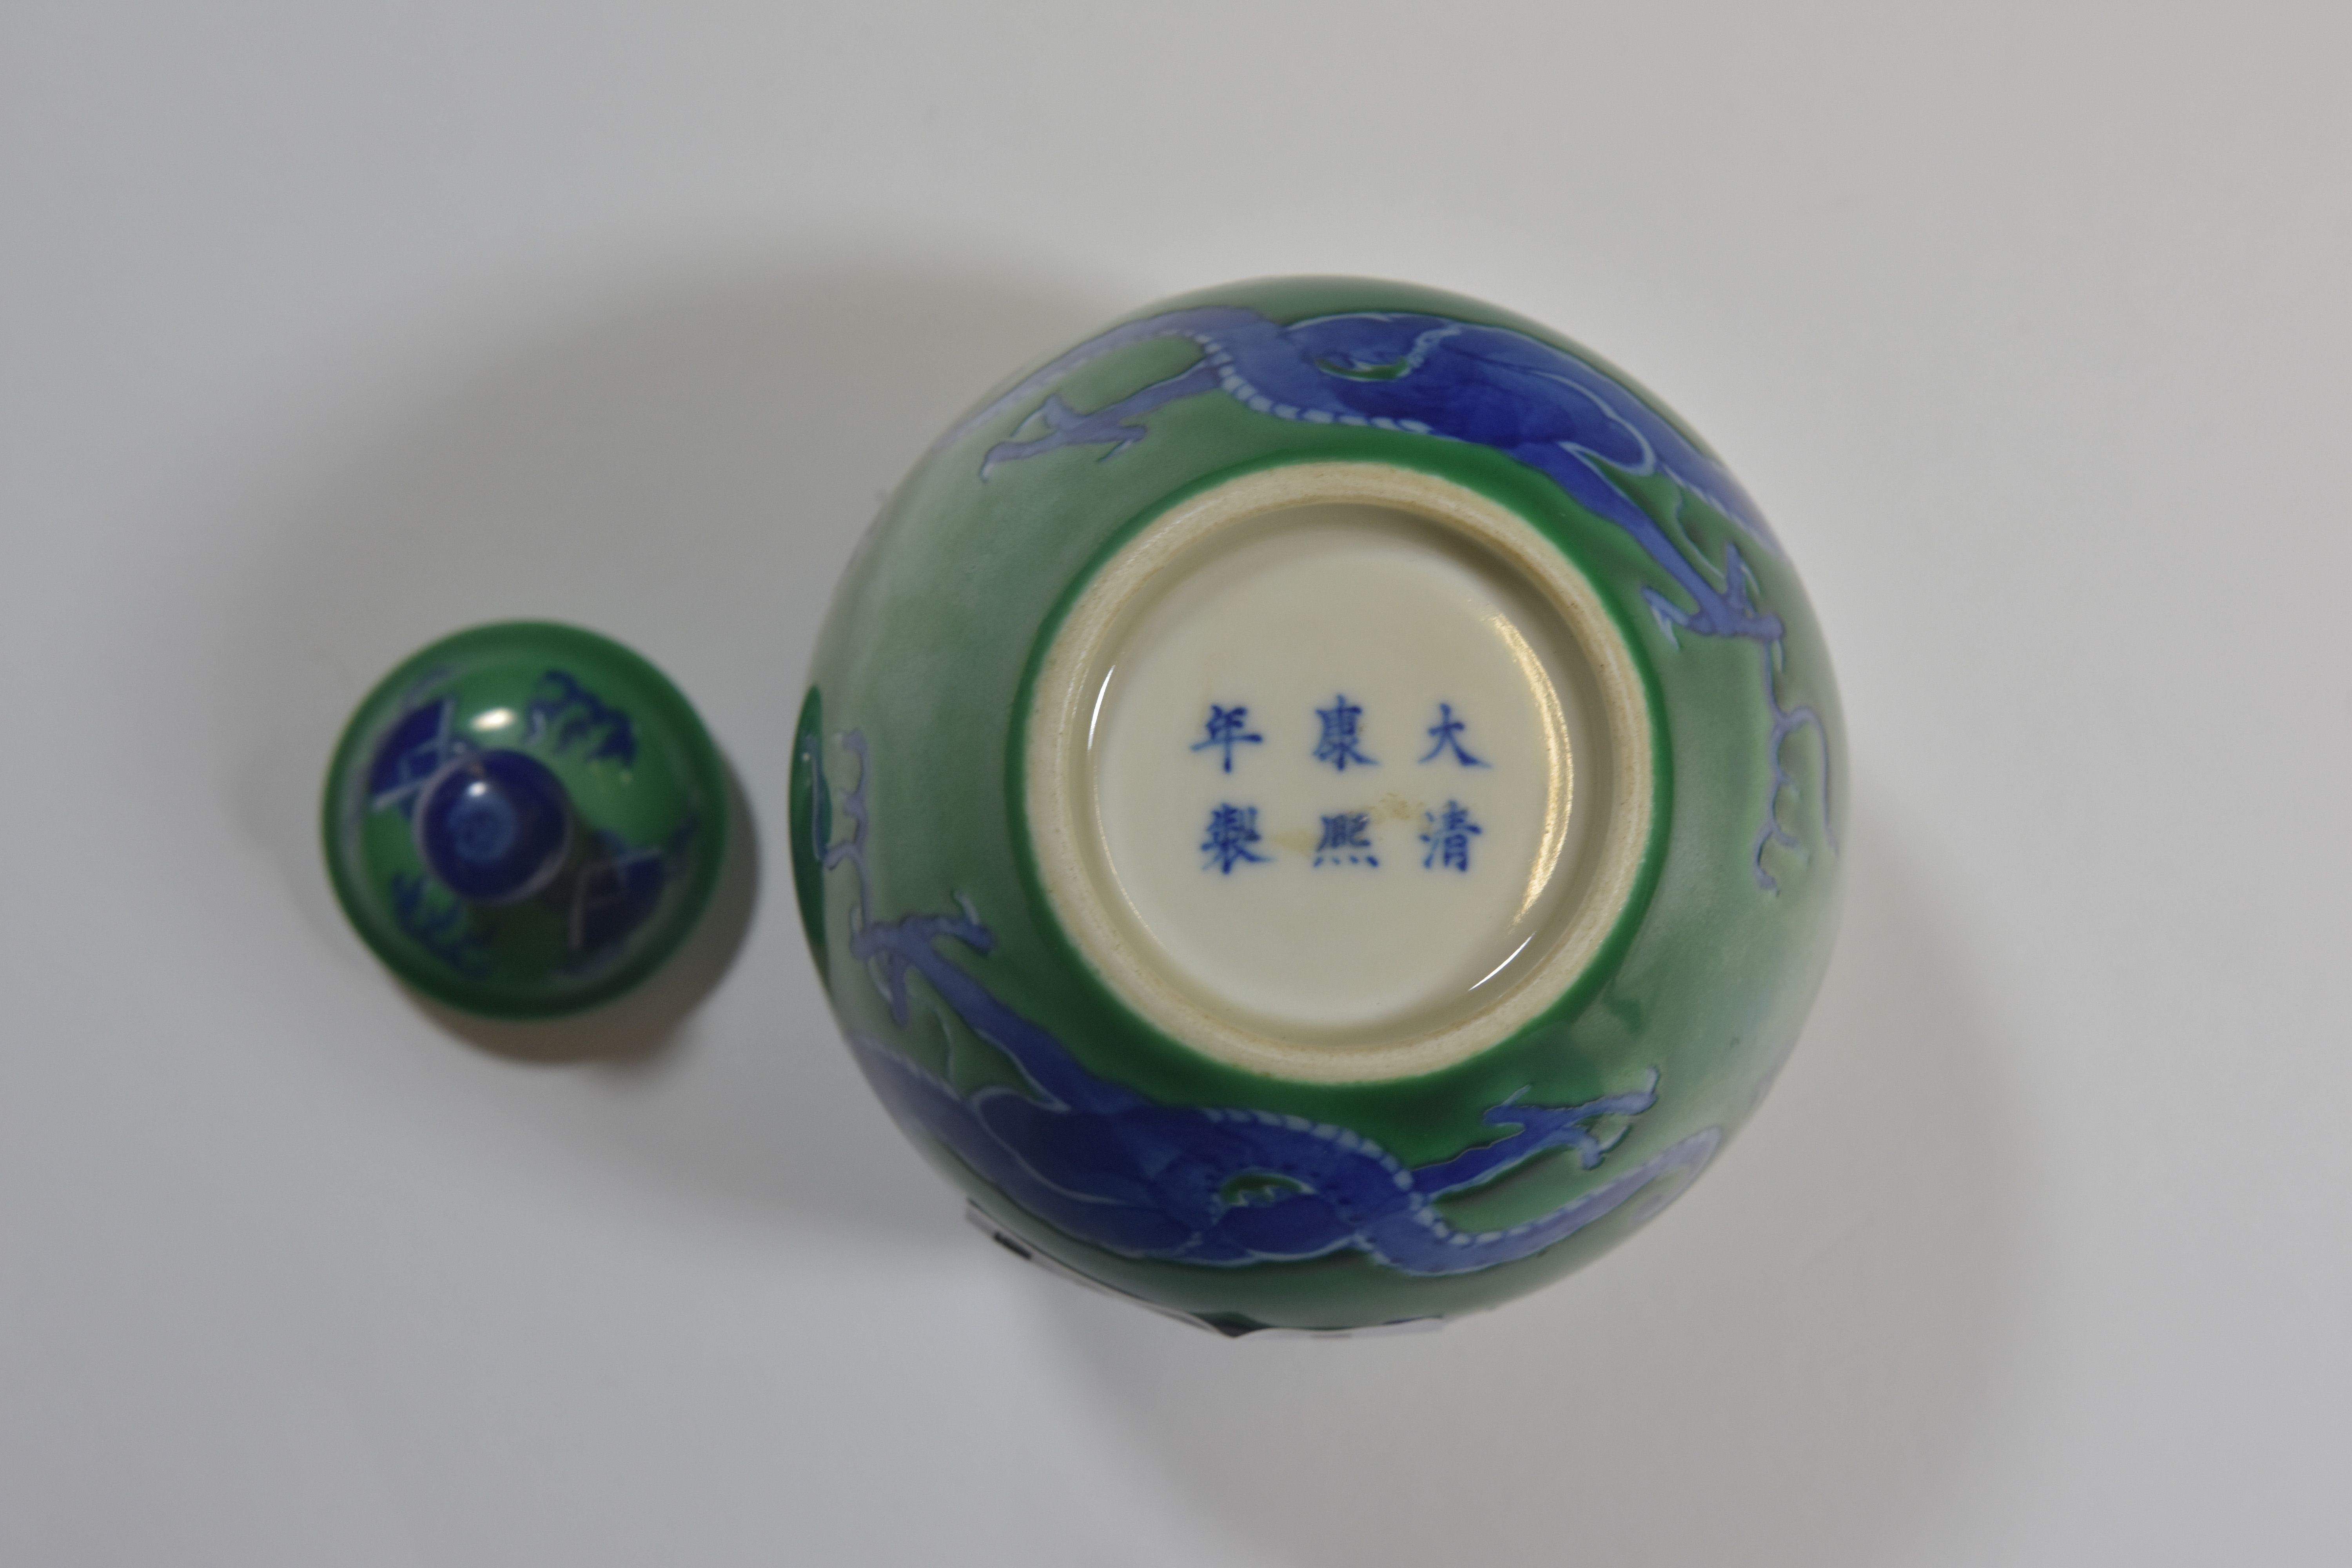 Lot 30 - A 19th century green glazed jar and cover with dragon Kangxi six character mark 15cm清朝時期 綠地藍龍小罐""